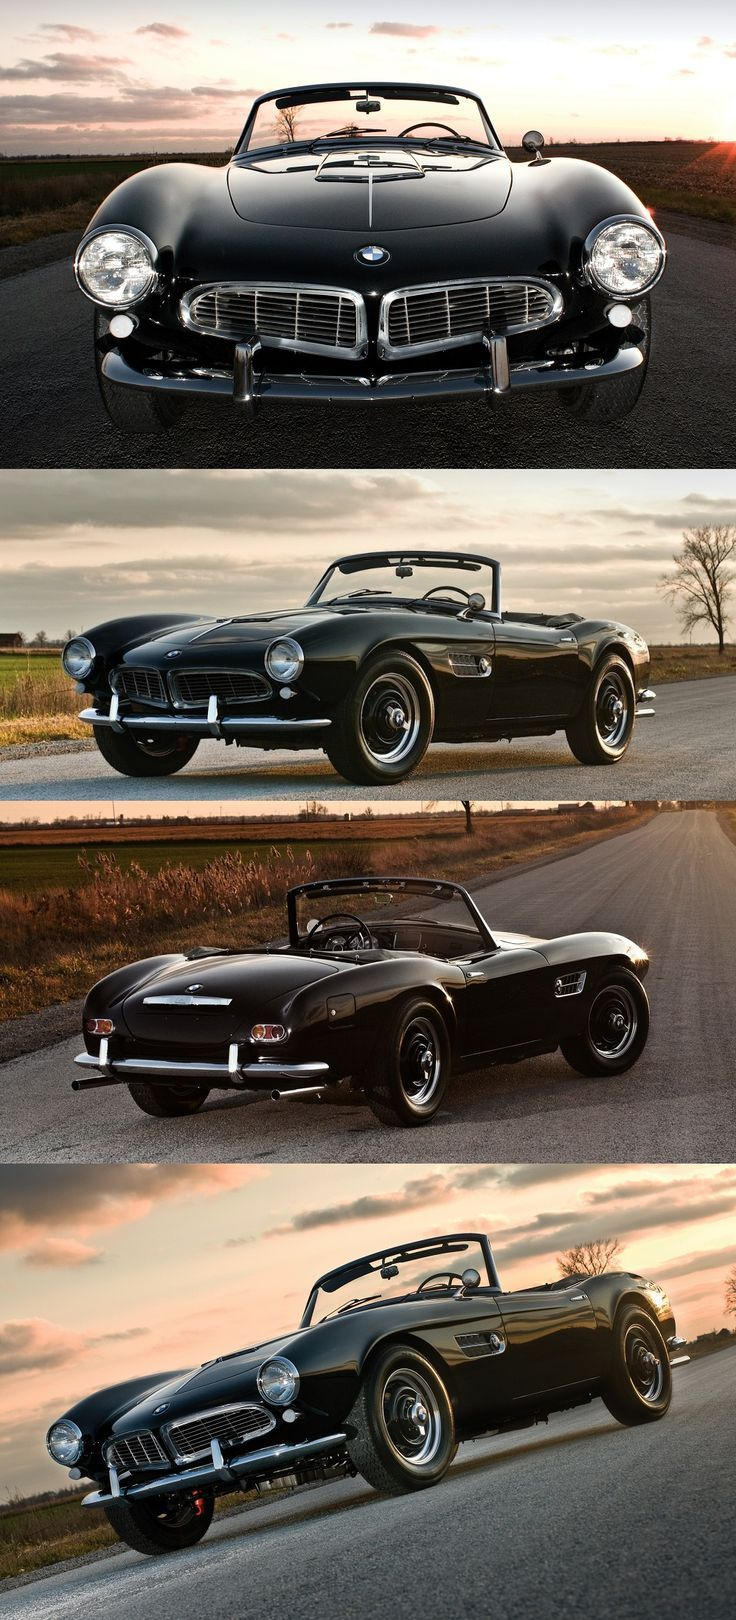 The Vintage BMW 507 Roadster History The BMW 507 2 doors roadster is a very spec… – lywstore.com